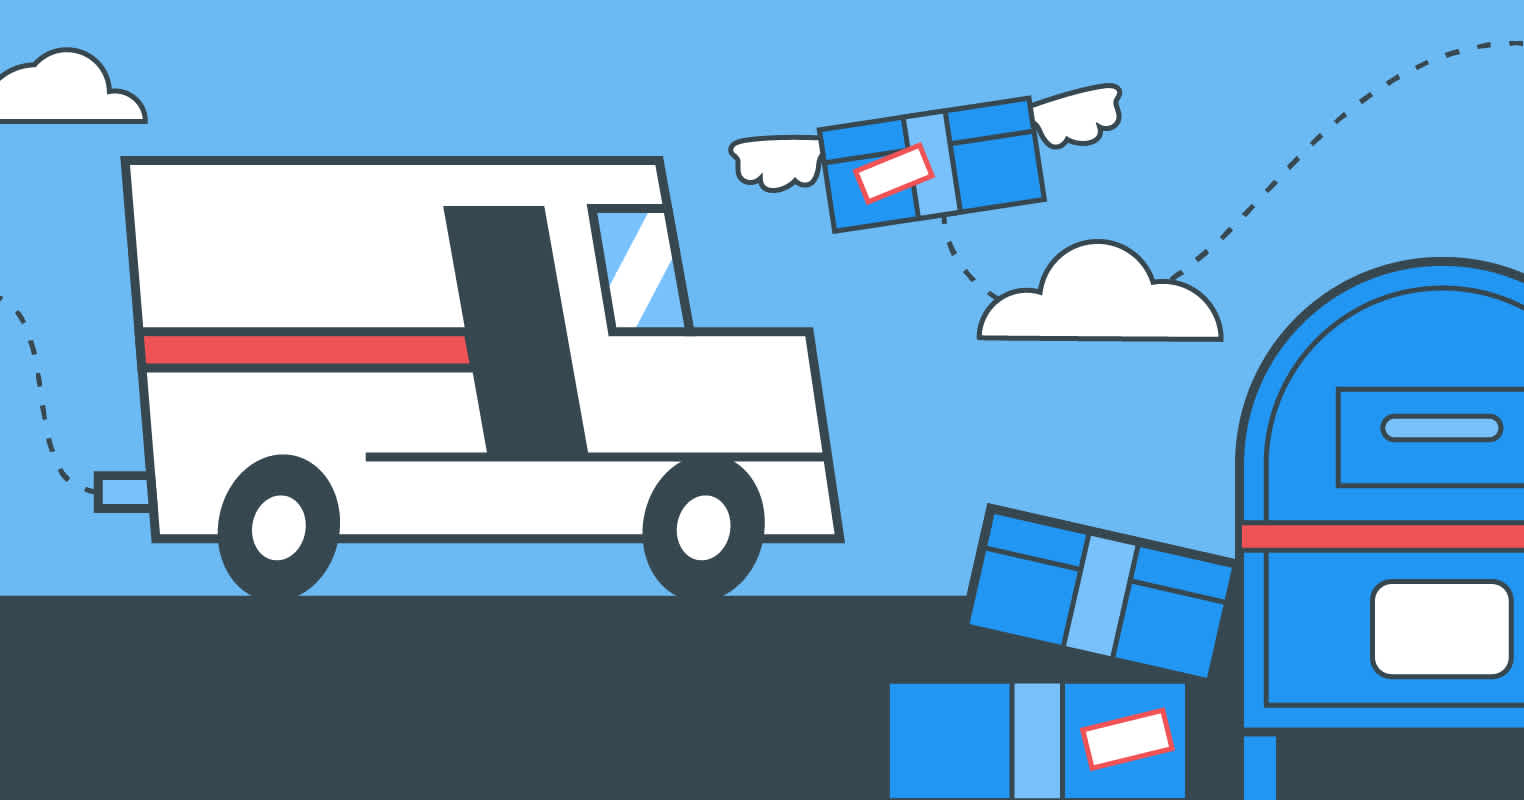 Header image with mail truck and packages metaphorical wings fluttering back as returns.